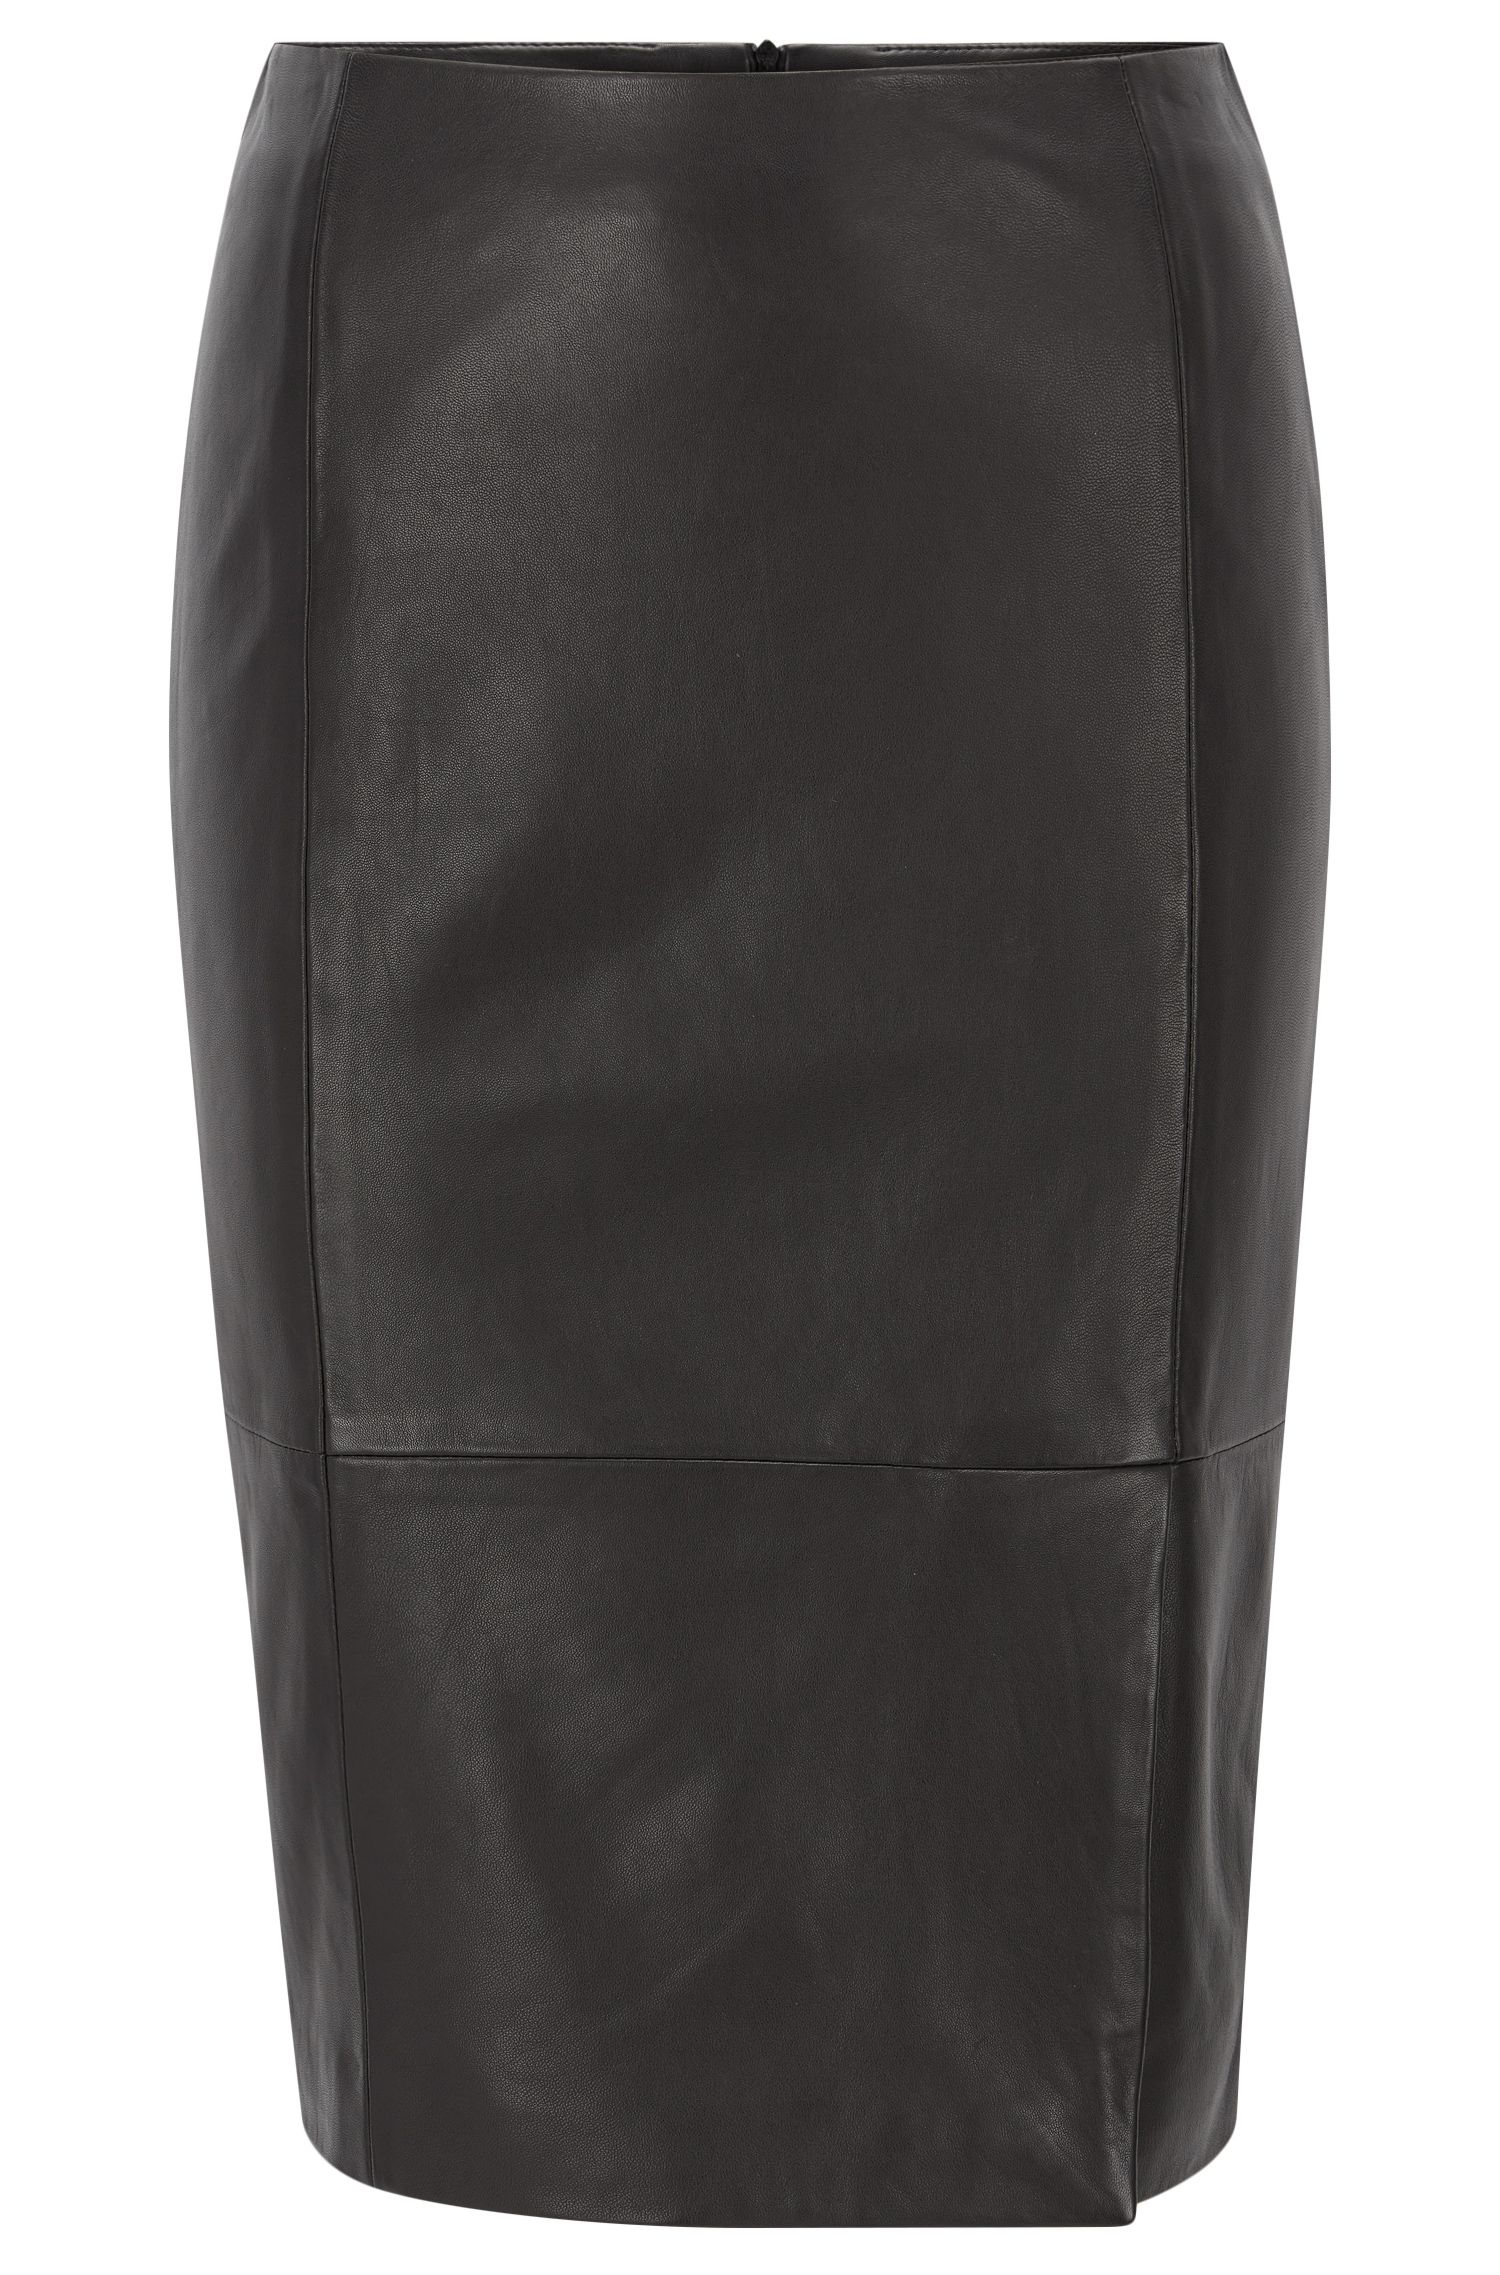 Leather pencil skirt with front vent